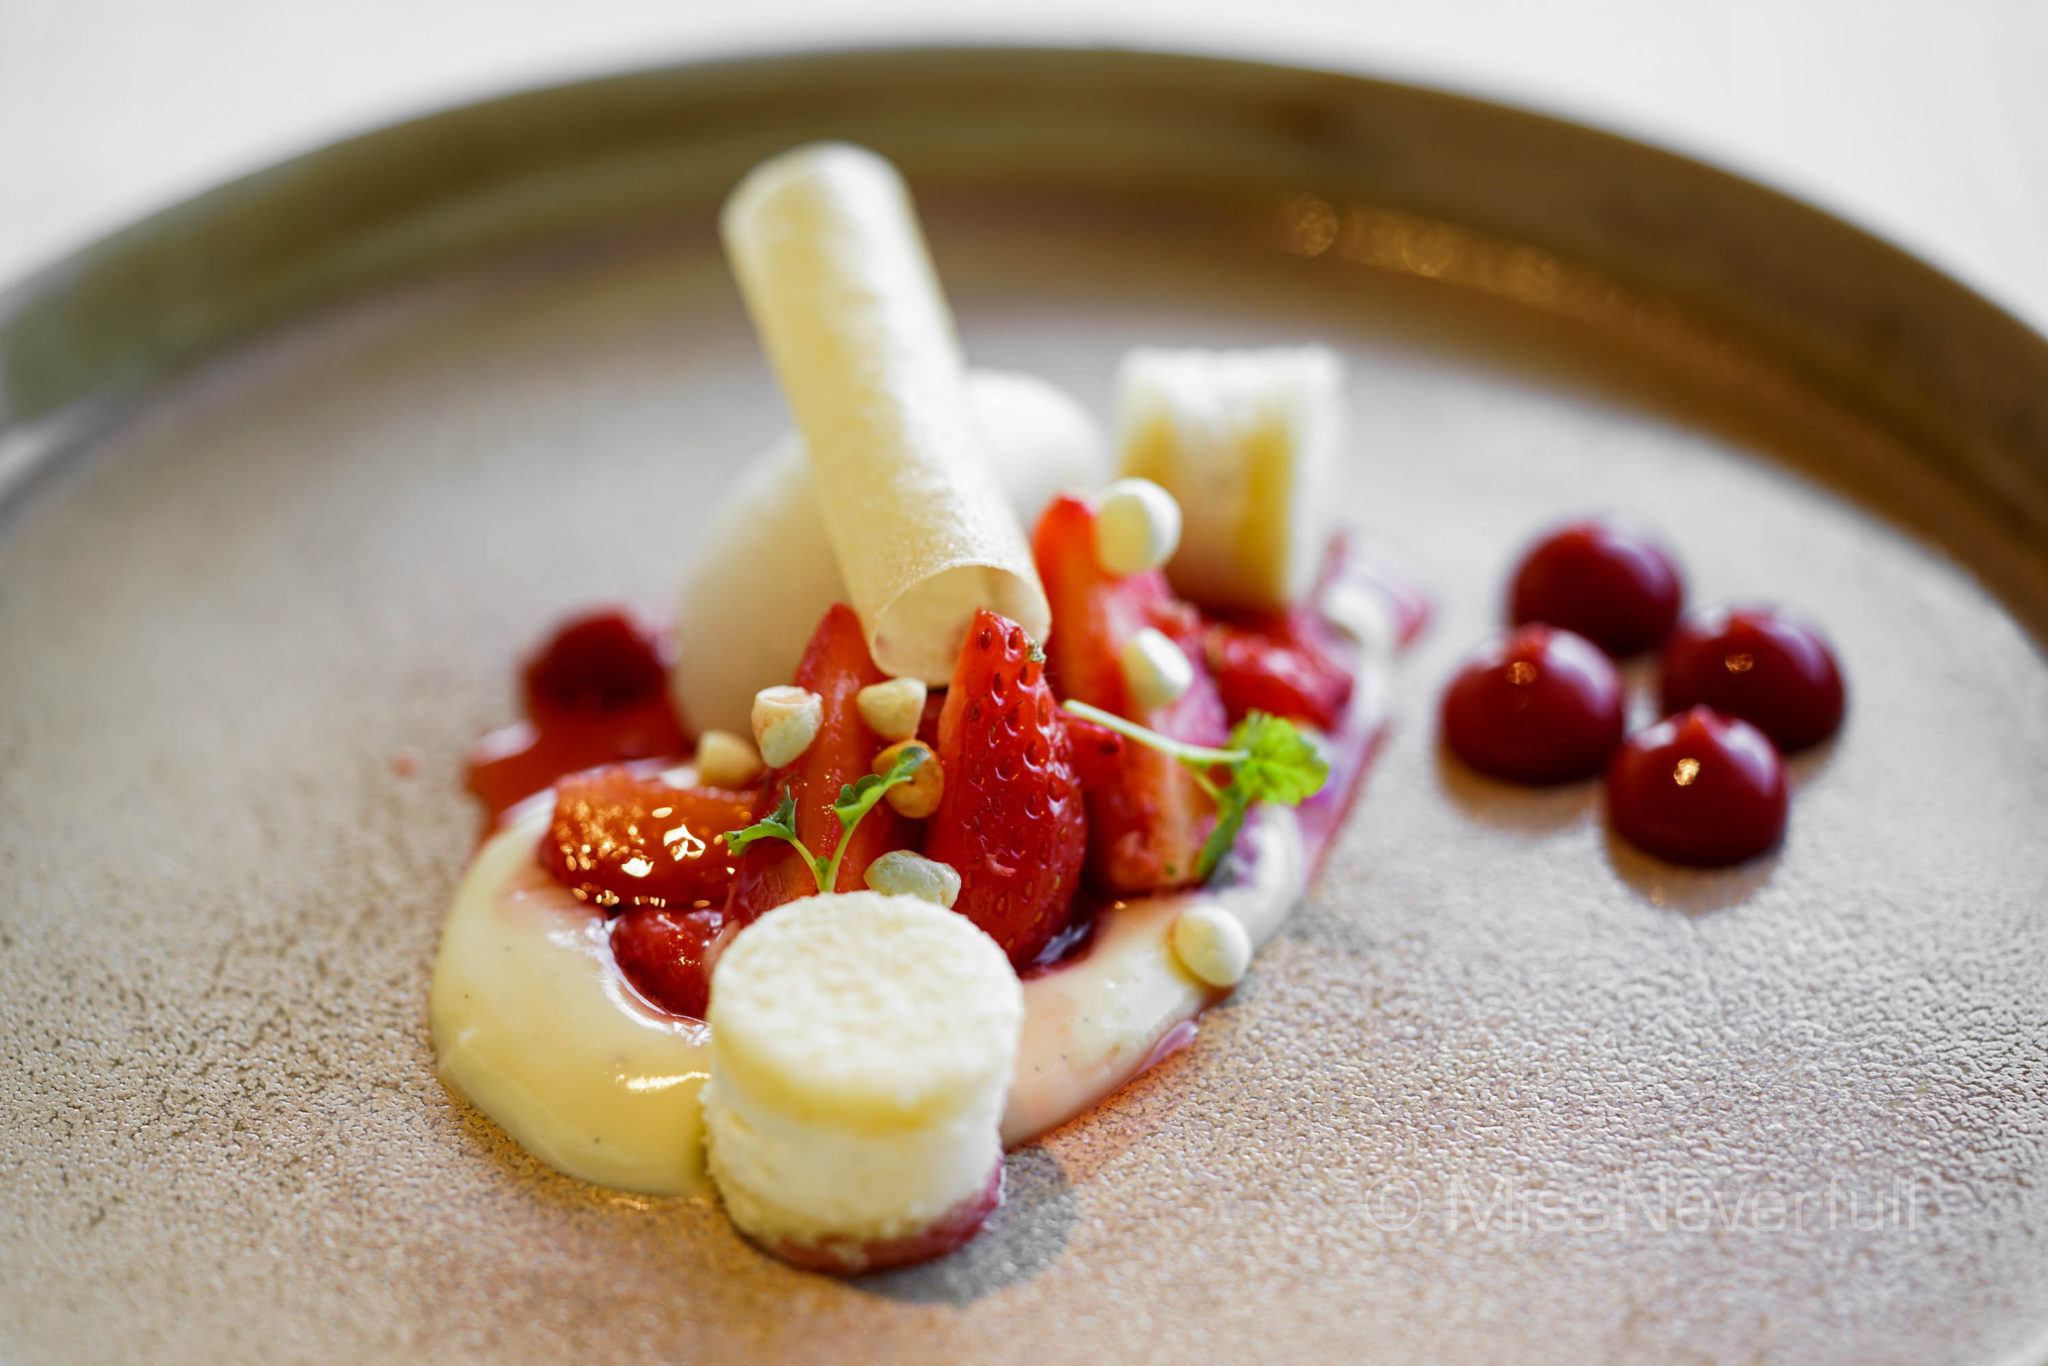 Gariguette strawberry, vanilla parfait and spiced sorbet